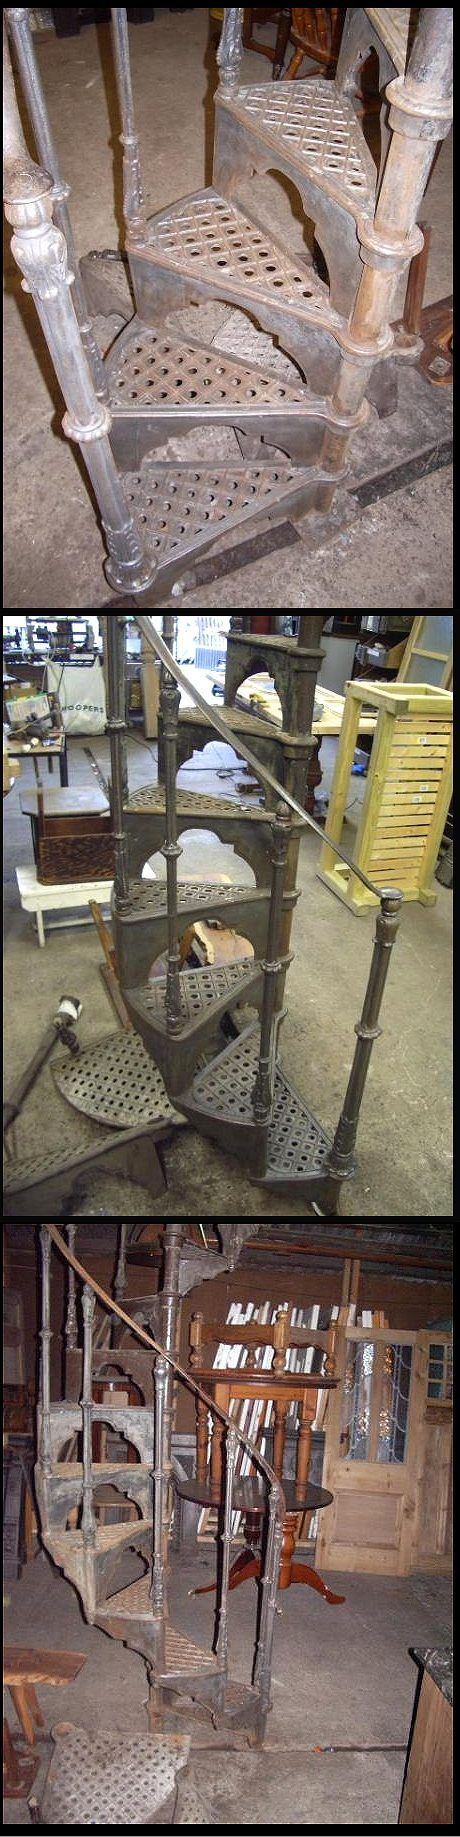 Iron Spiral Staircase For Sale - Yakaz For sale